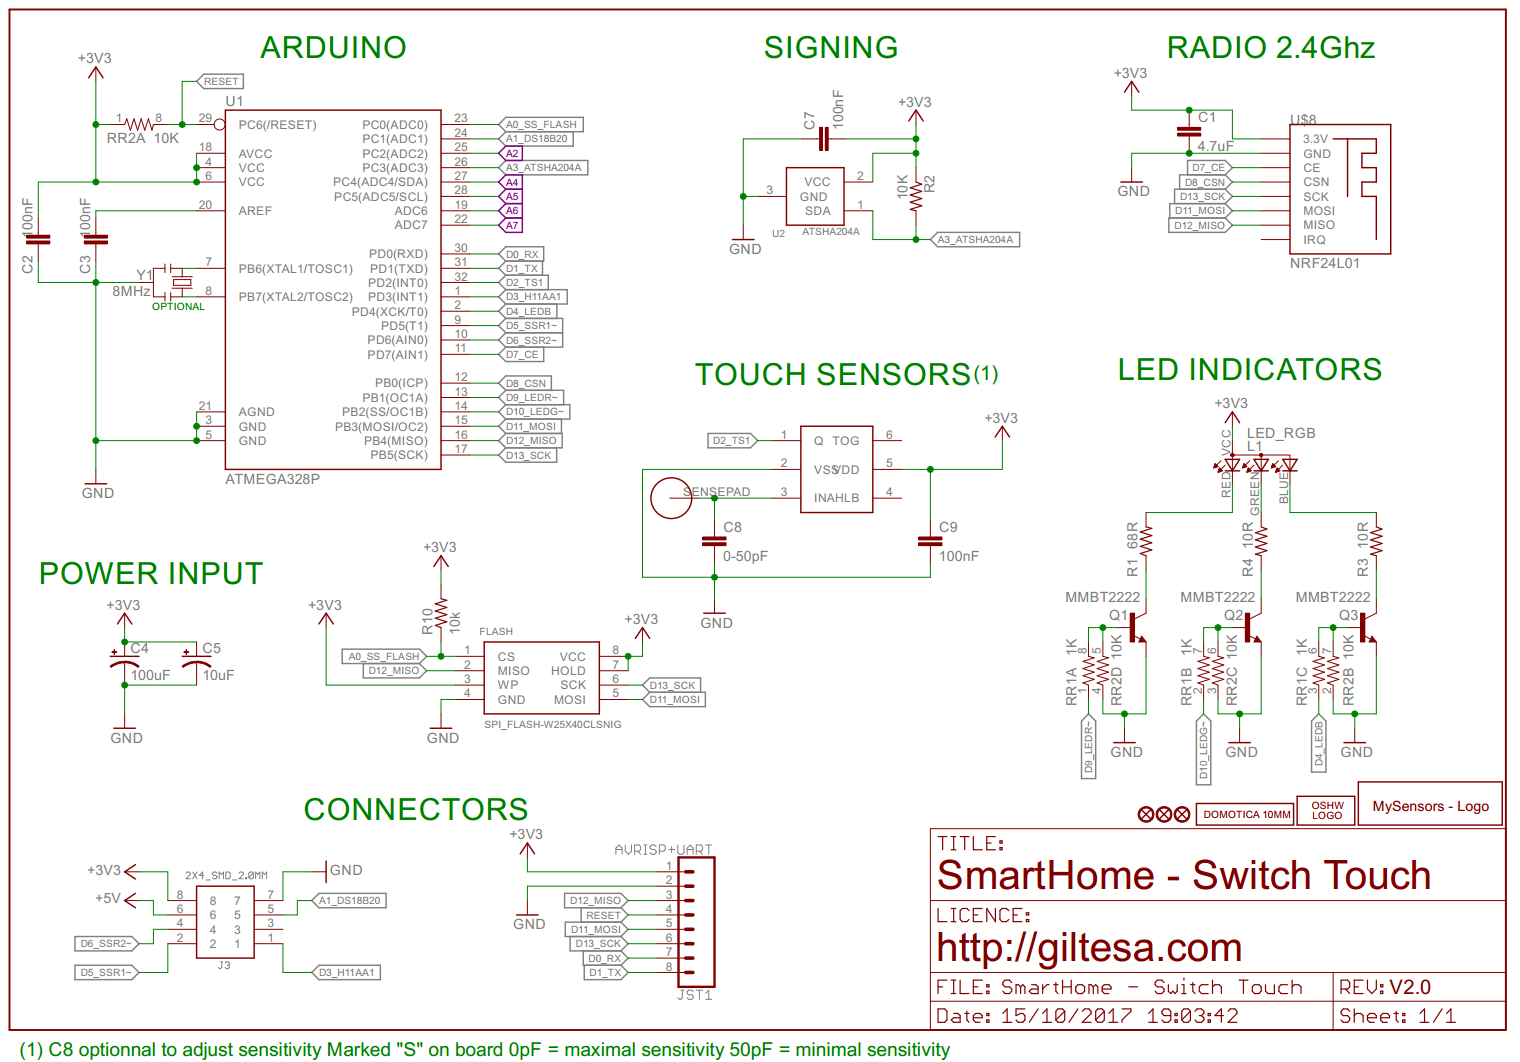 214SmartHome_Switch_Touch.png